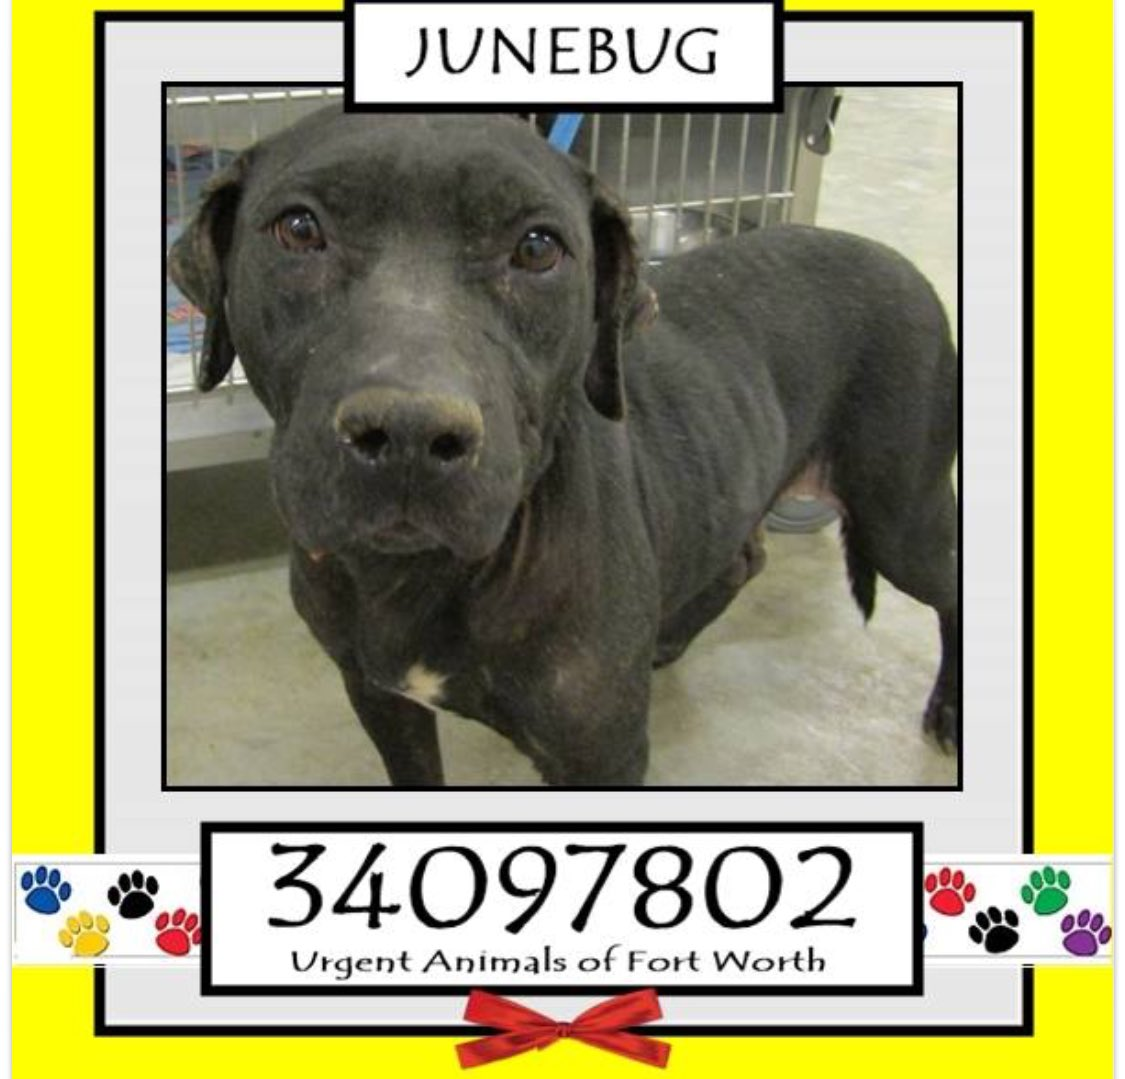 JUNEBUG #FortWorth #TX 2BANYTIMESweet girl HW+ needs a #Hero 2SAVE herPLZ #ADOPT #Foster #Pledge for #Rescue  https://www. facebook.com/fwaccurgents/p osts/1480608132011276 &nbsp; … <br>http://pic.twitter.com/gQY2wOXB2J